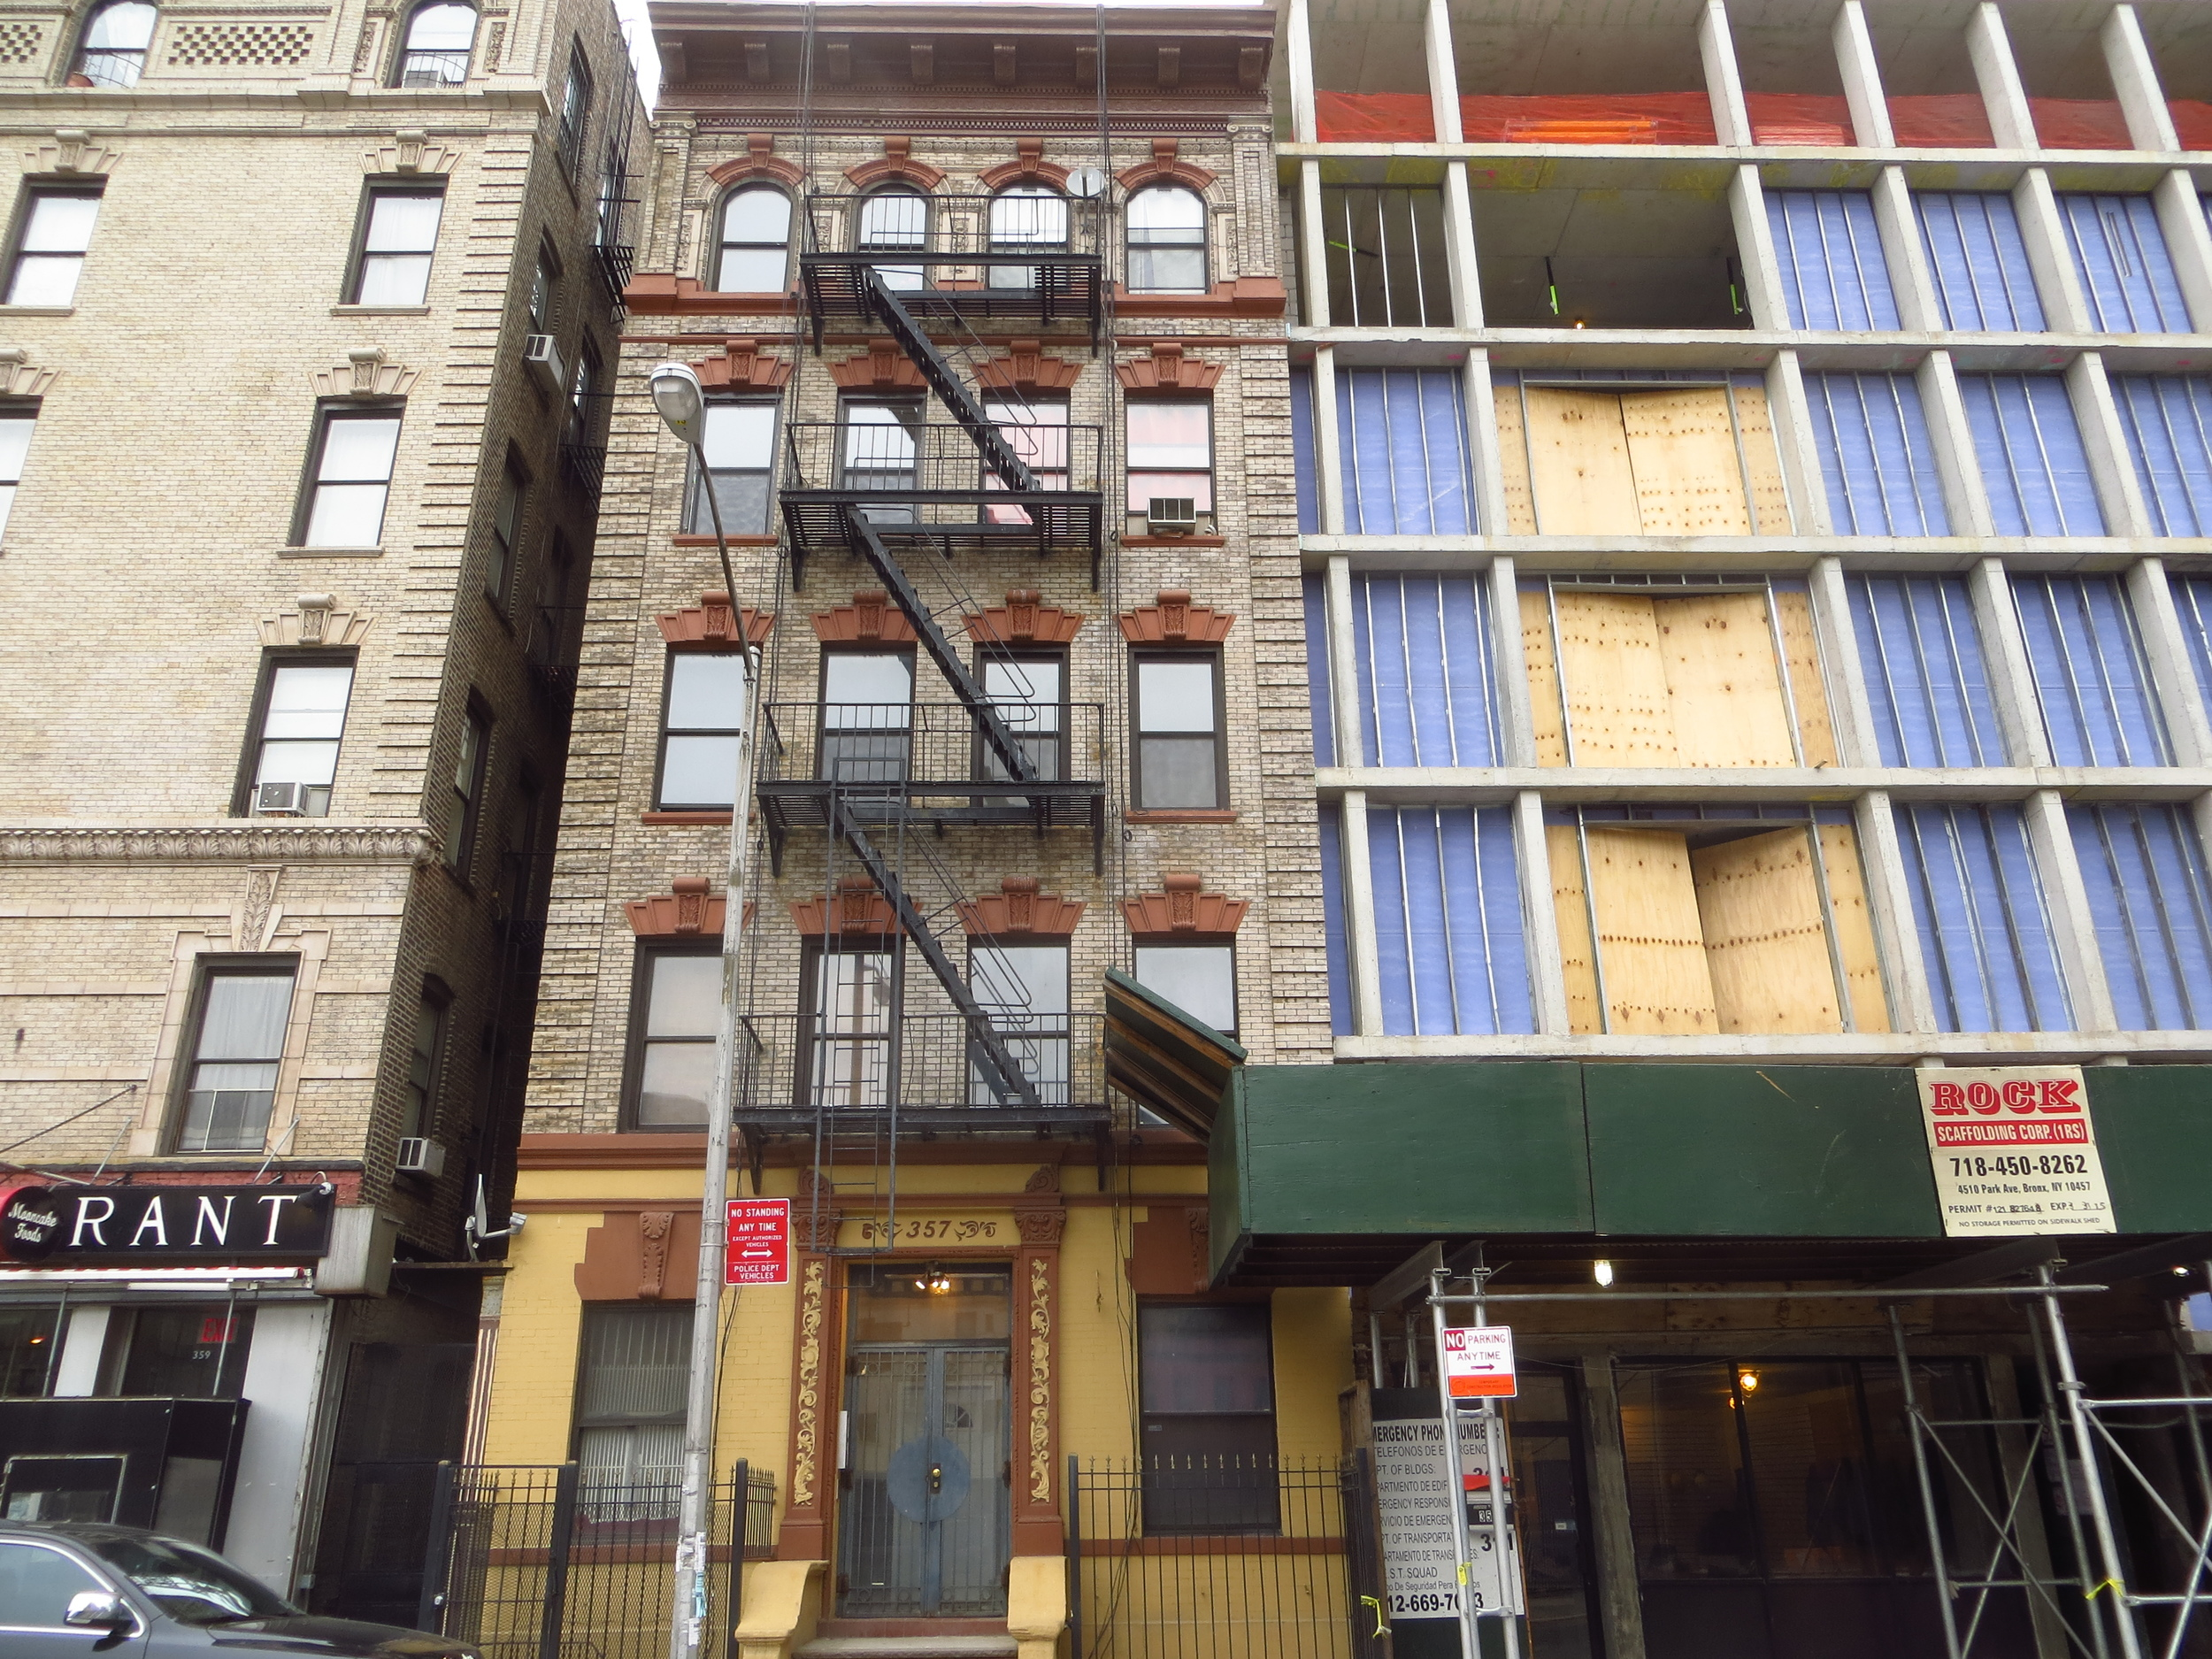 More Hell's Kitchen apartments